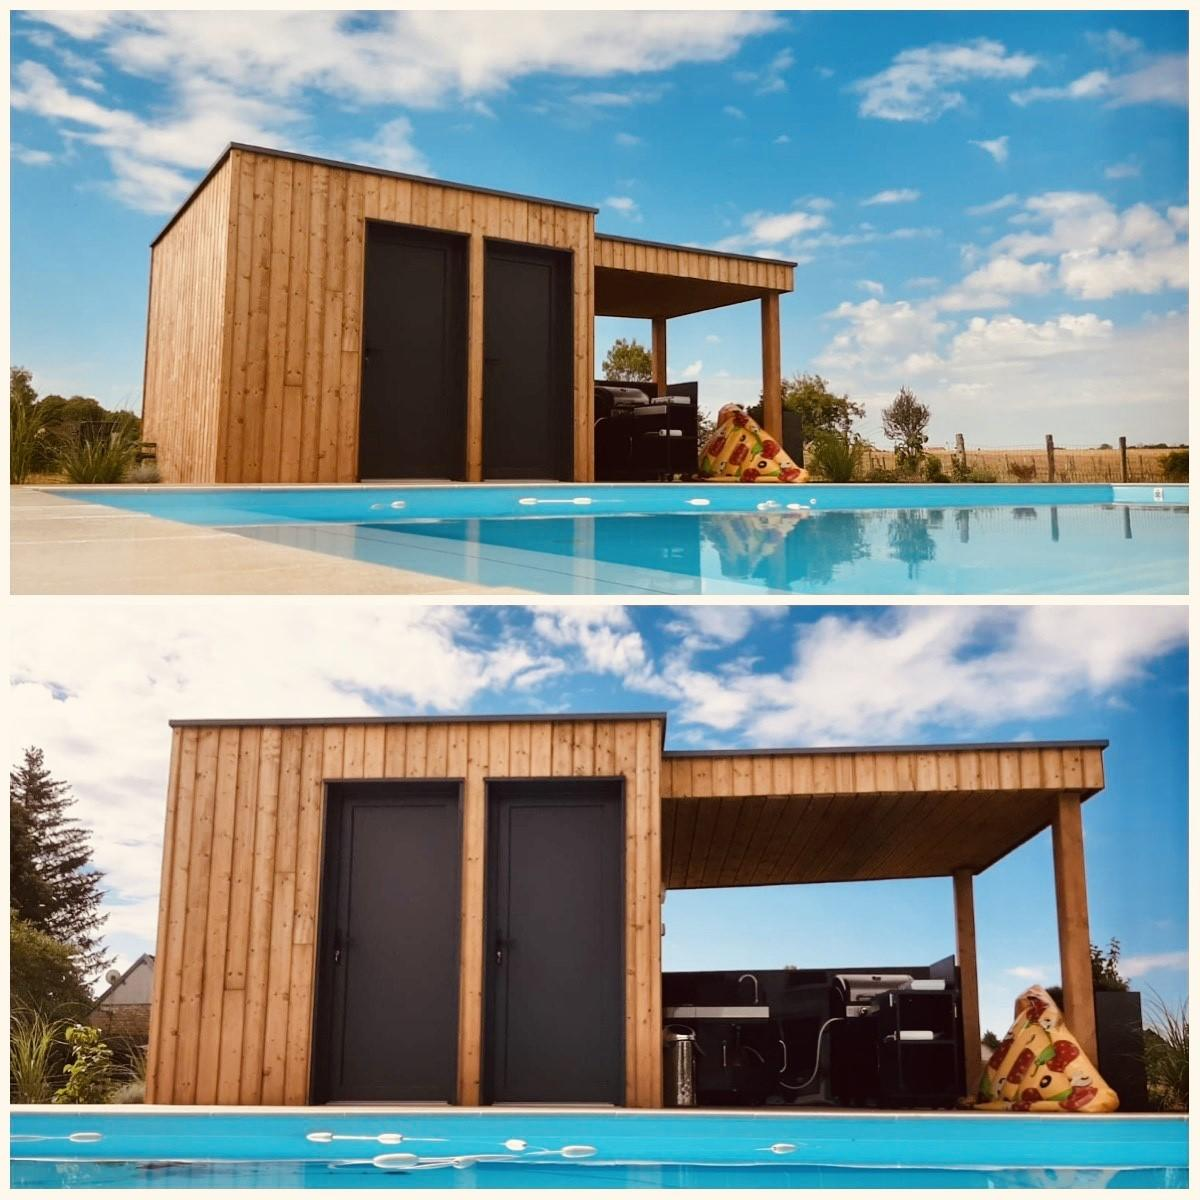 Pool house en pin autoclave